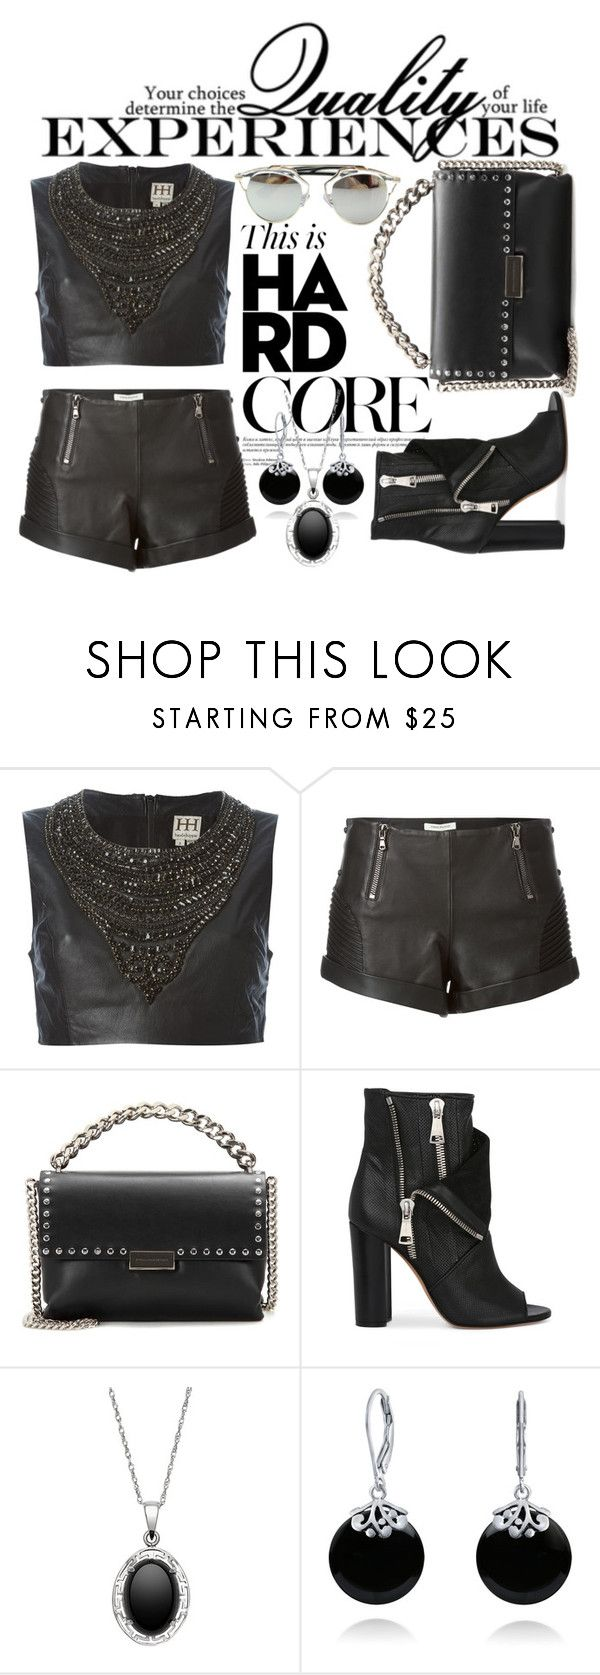 """""""Hard Core Leather"""" by mia-christine ❤ liked on Polyvore featuring Haute Hippie, Pierre Balmain, STELLA McCARTNEY, Casadei, Bling Jewelry, Chicnova Fashion, Leather and moods"""